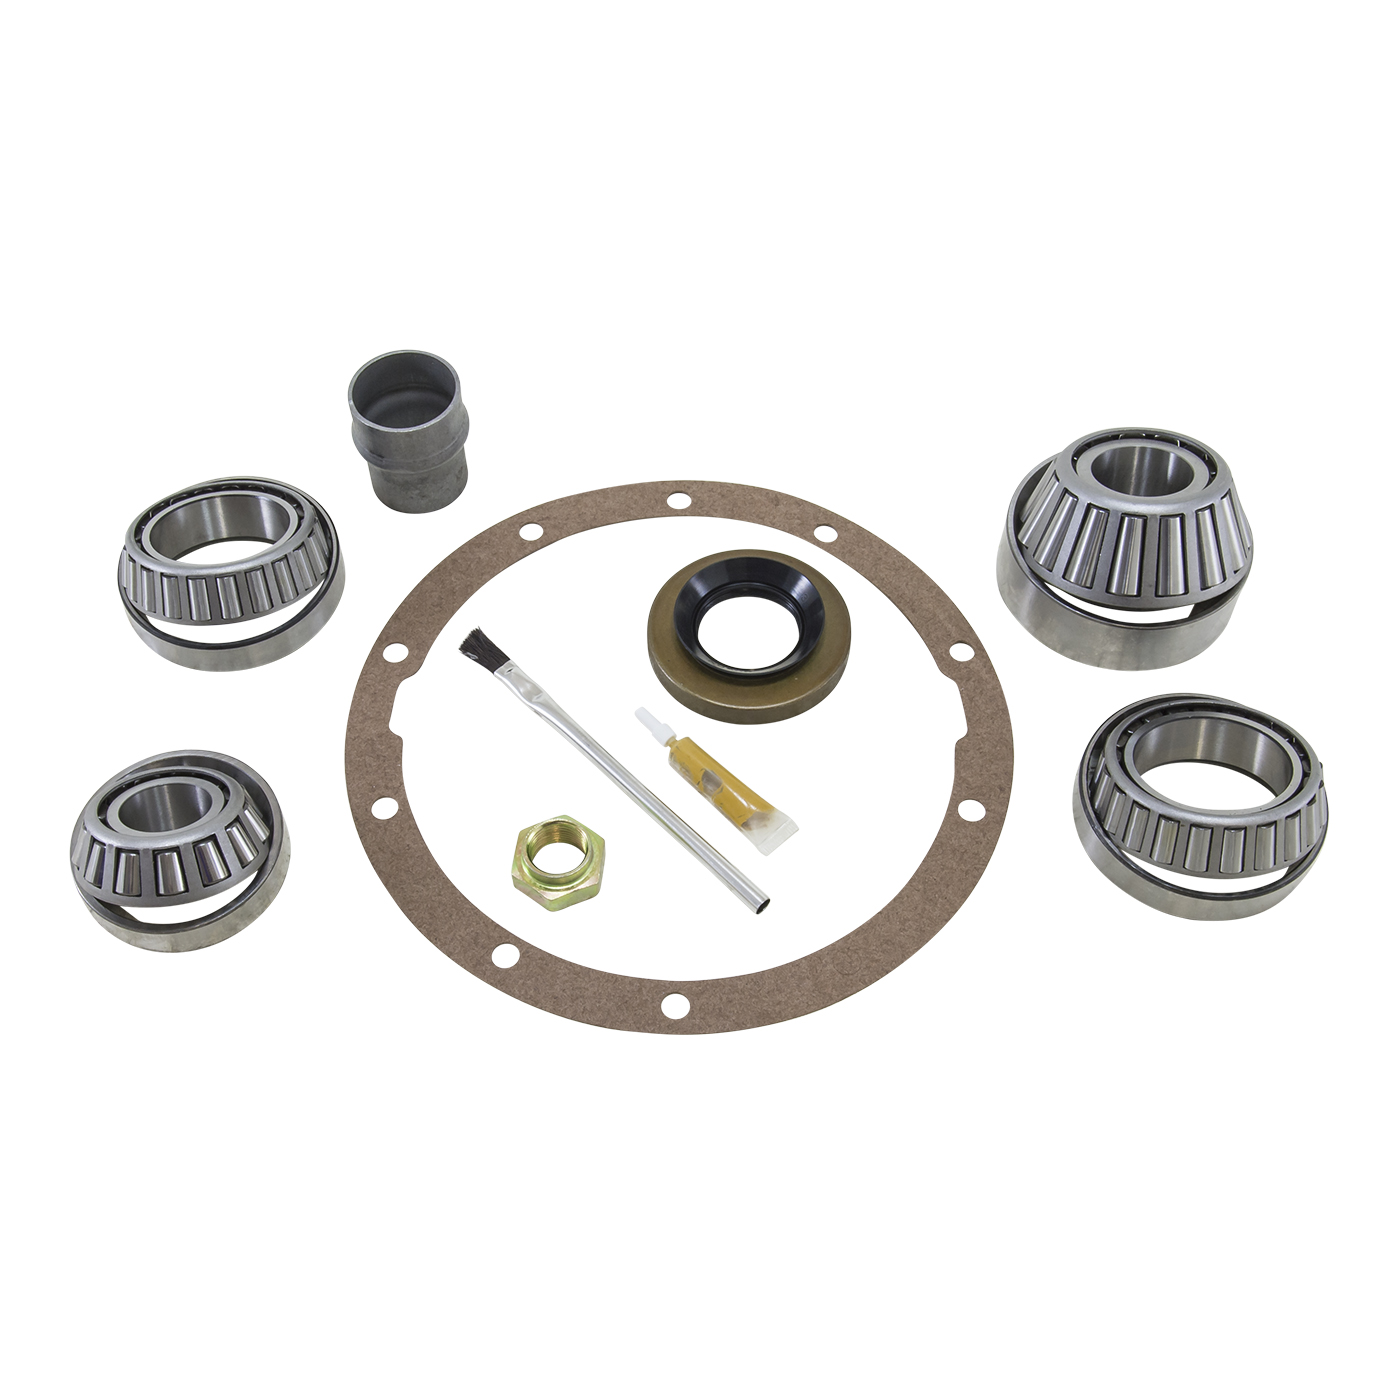 BK TV6 - Yukon Bearing install kit for Toyota Turbo 4 and V6 differential w/ 27 spline pinion